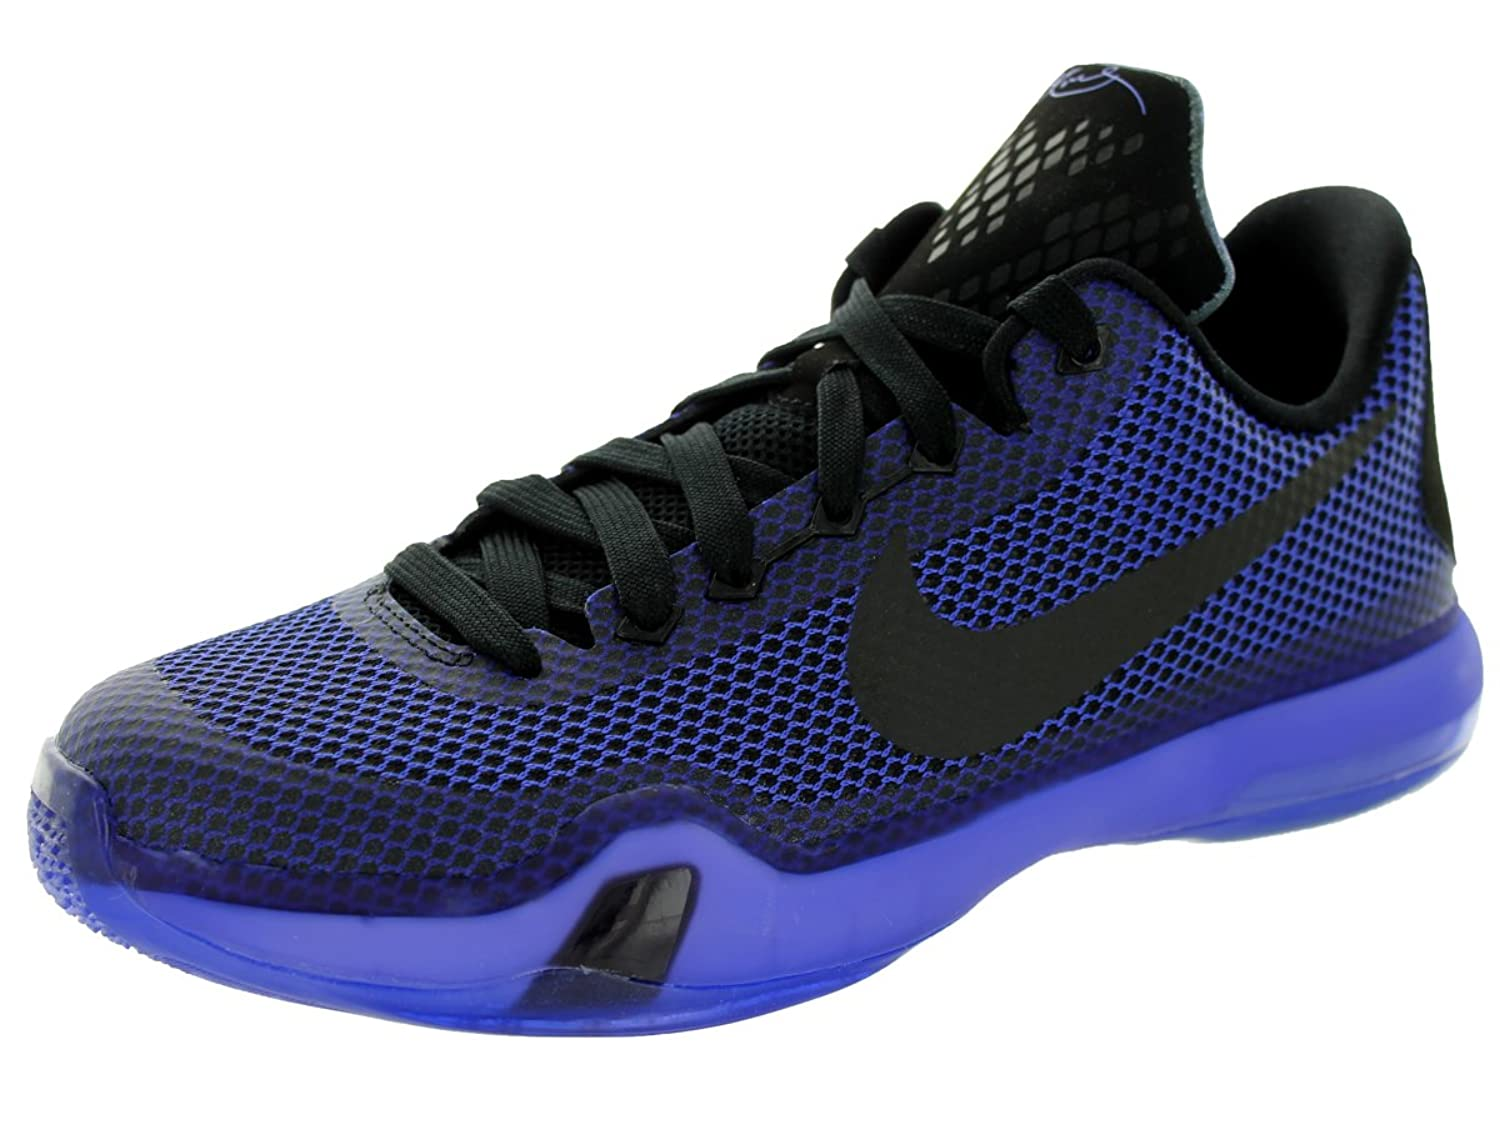 nike motion control shoes for kids